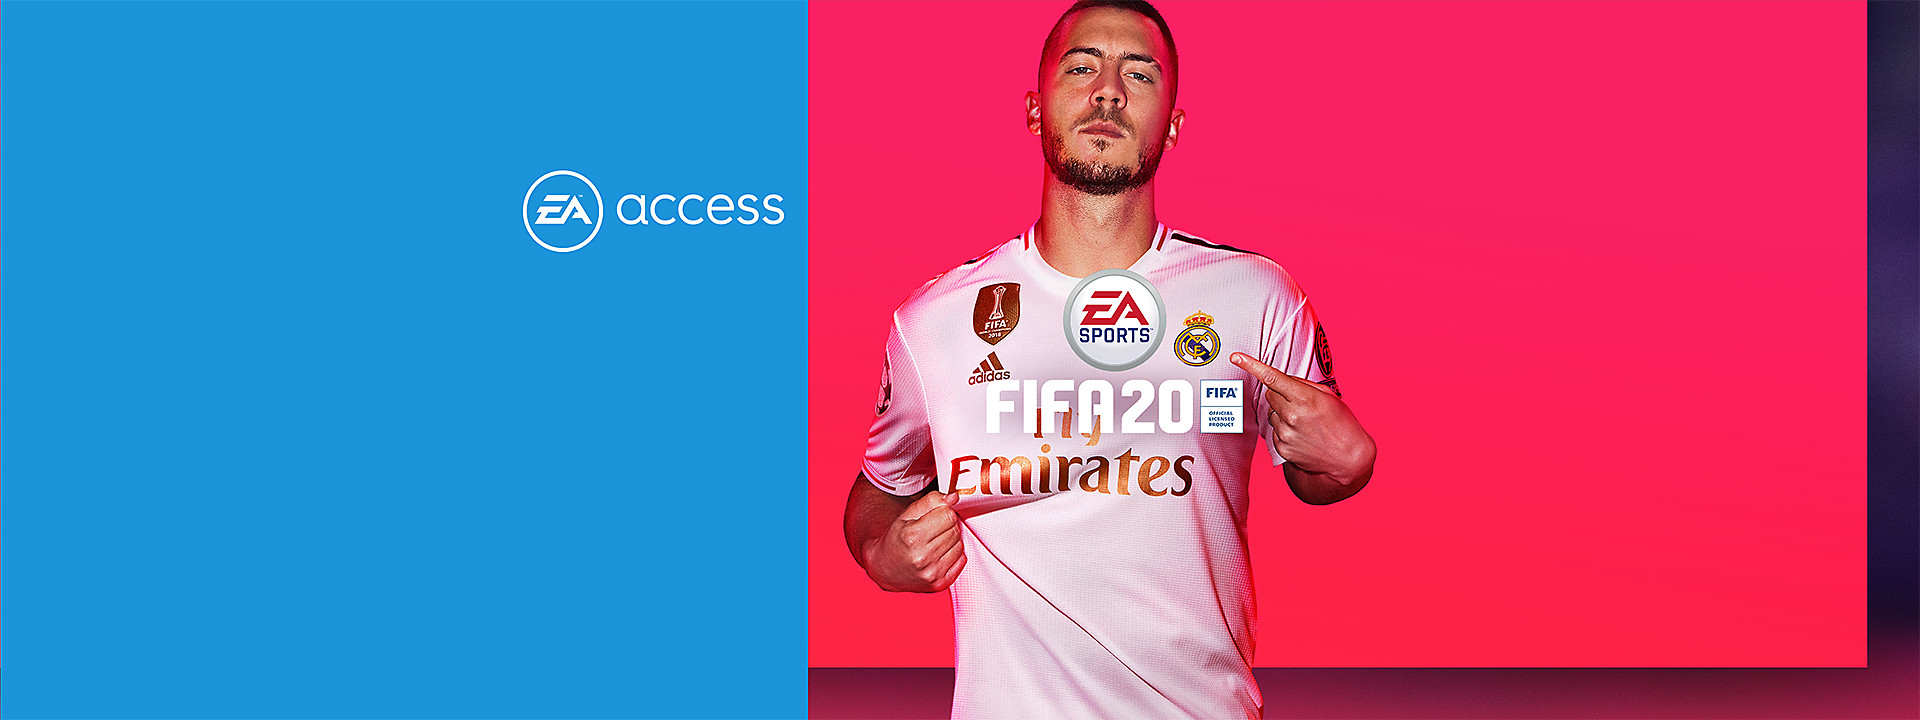 EA Sports FIFA 20 - Now Available on EA Access